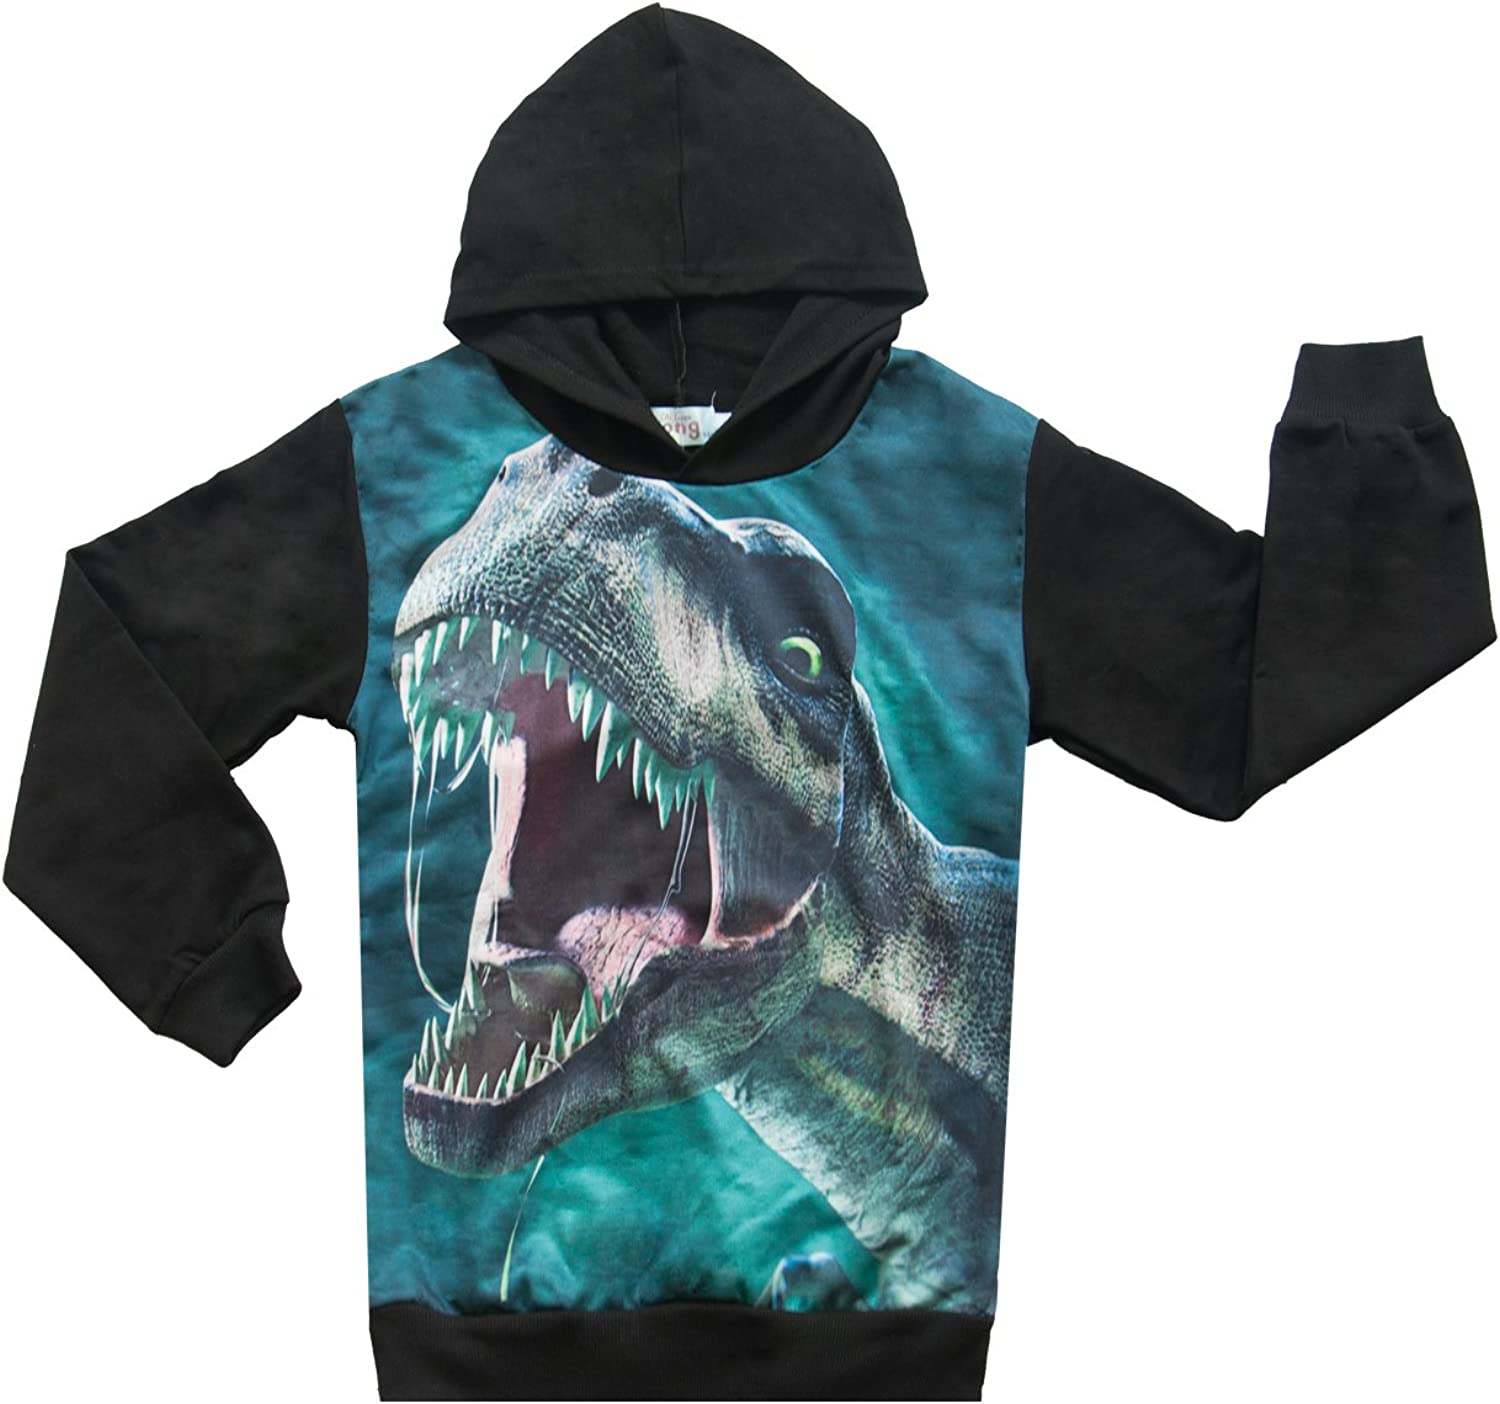 Boys Hoodies Dinosaur Sweatshirts Pullover Toddler Casual Long Sleeve T-Shirts Tops for 4-9 Years